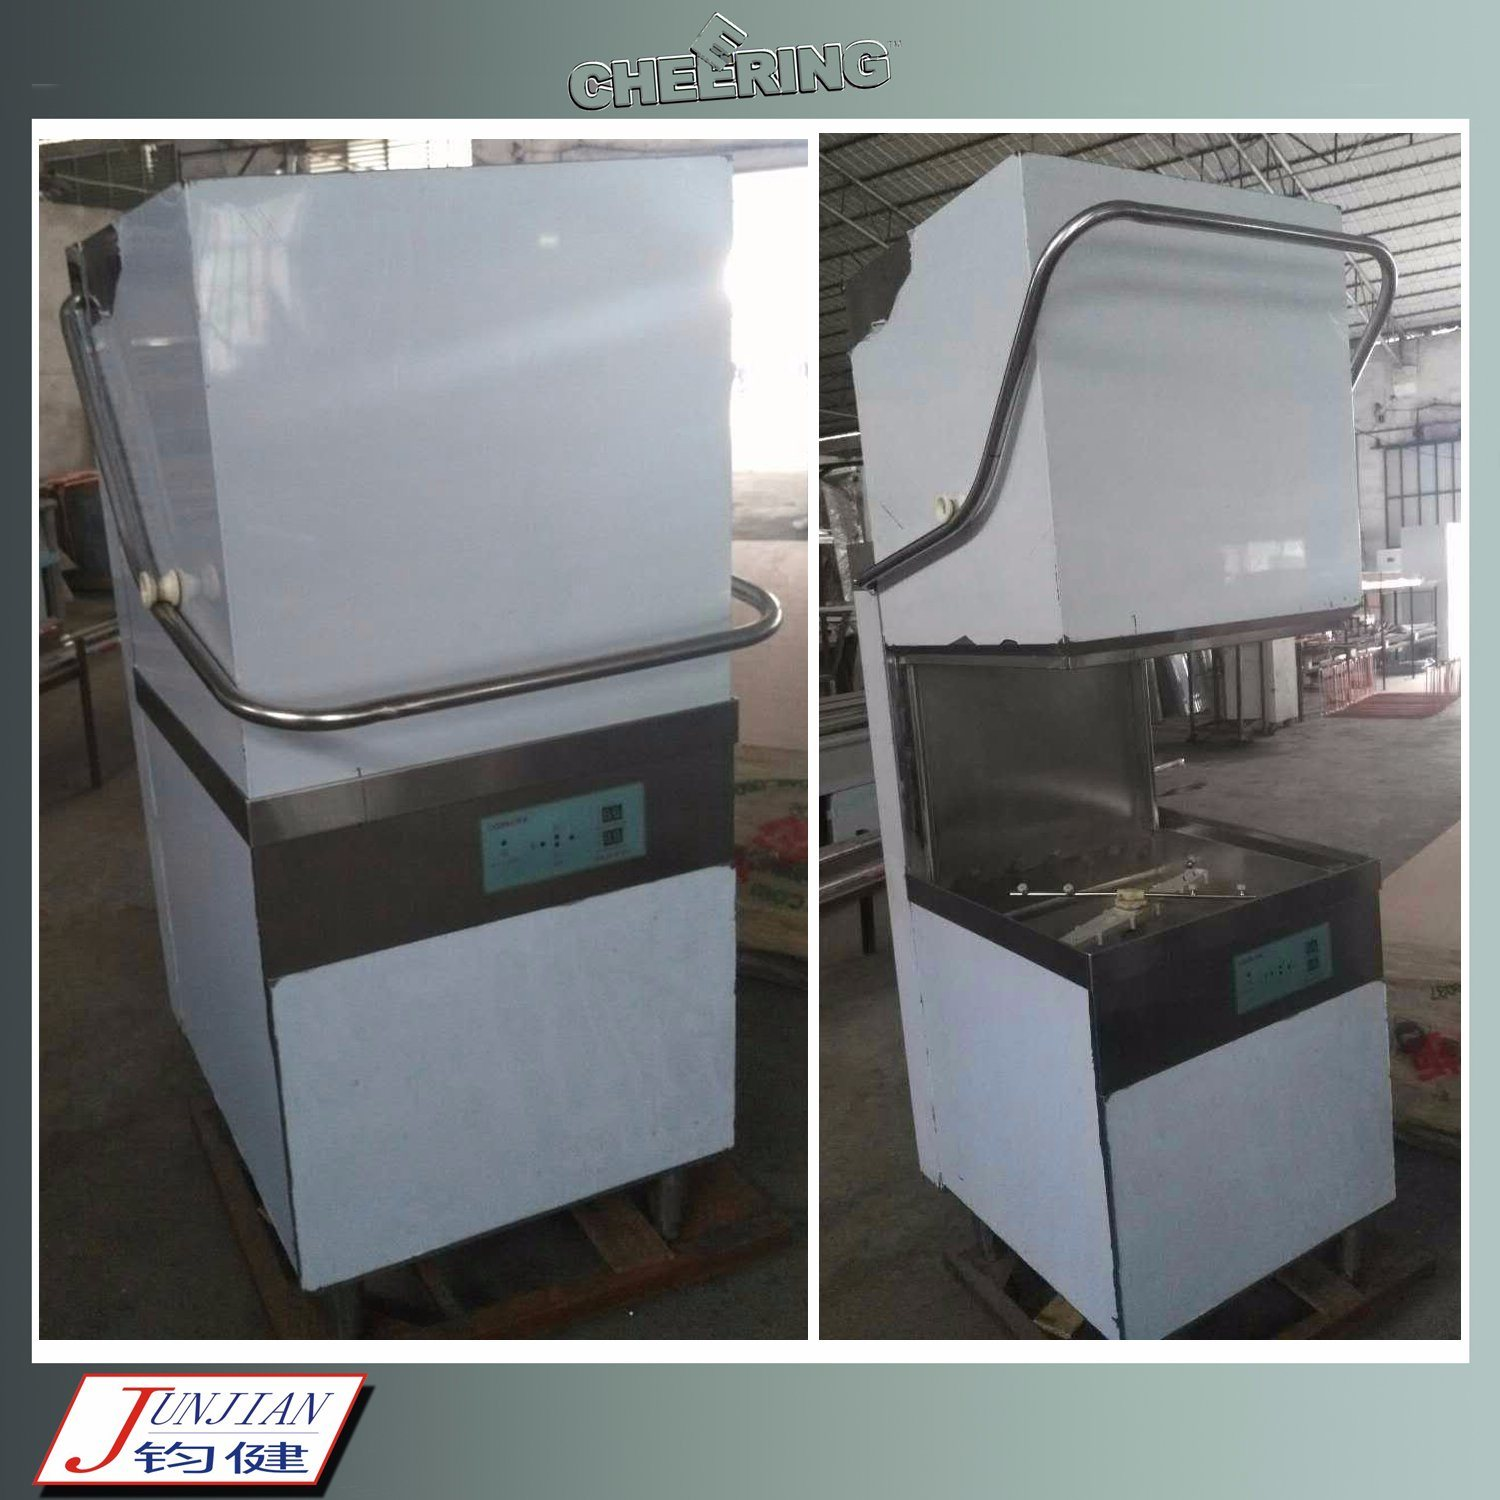 Cheering Commercial Stainless Steel Ultra High Temperature Dishwasher for Cleaning